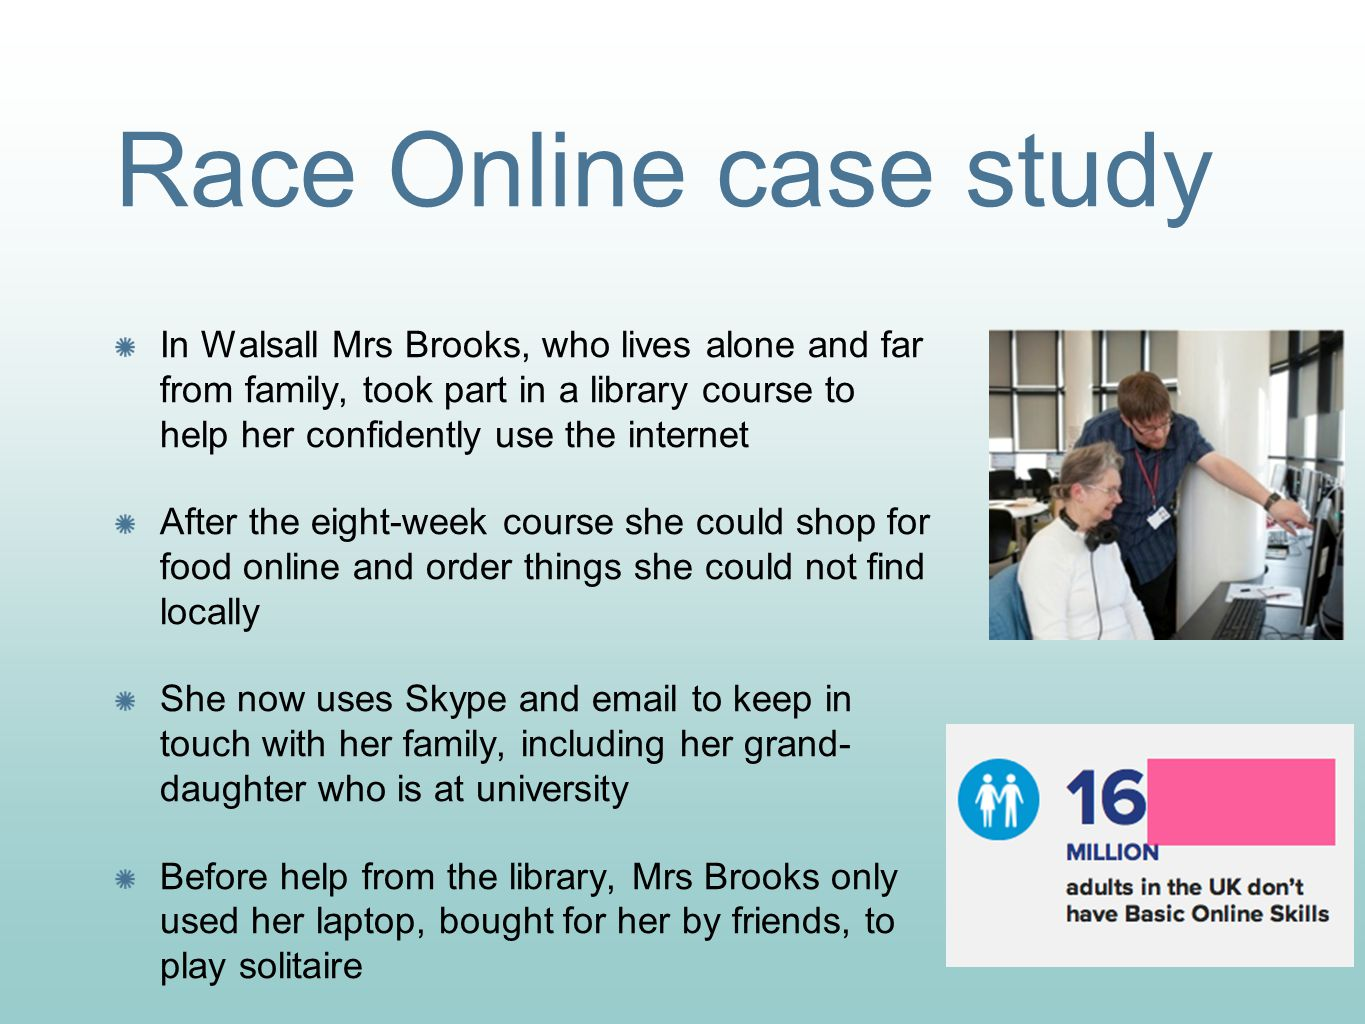 Race Online case study In Walsall Mrs Brooks, who lives alone and far from family, took part in a library course to help her confidently use the internet After the eight-week course she could shop for food online and order things she could not find locally She now uses Skype and email to keep in touch with her family, including her grand- daughter who is at university Before help from the library, Mrs Brooks only used her laptop, bought for her by friends, to play solitaire